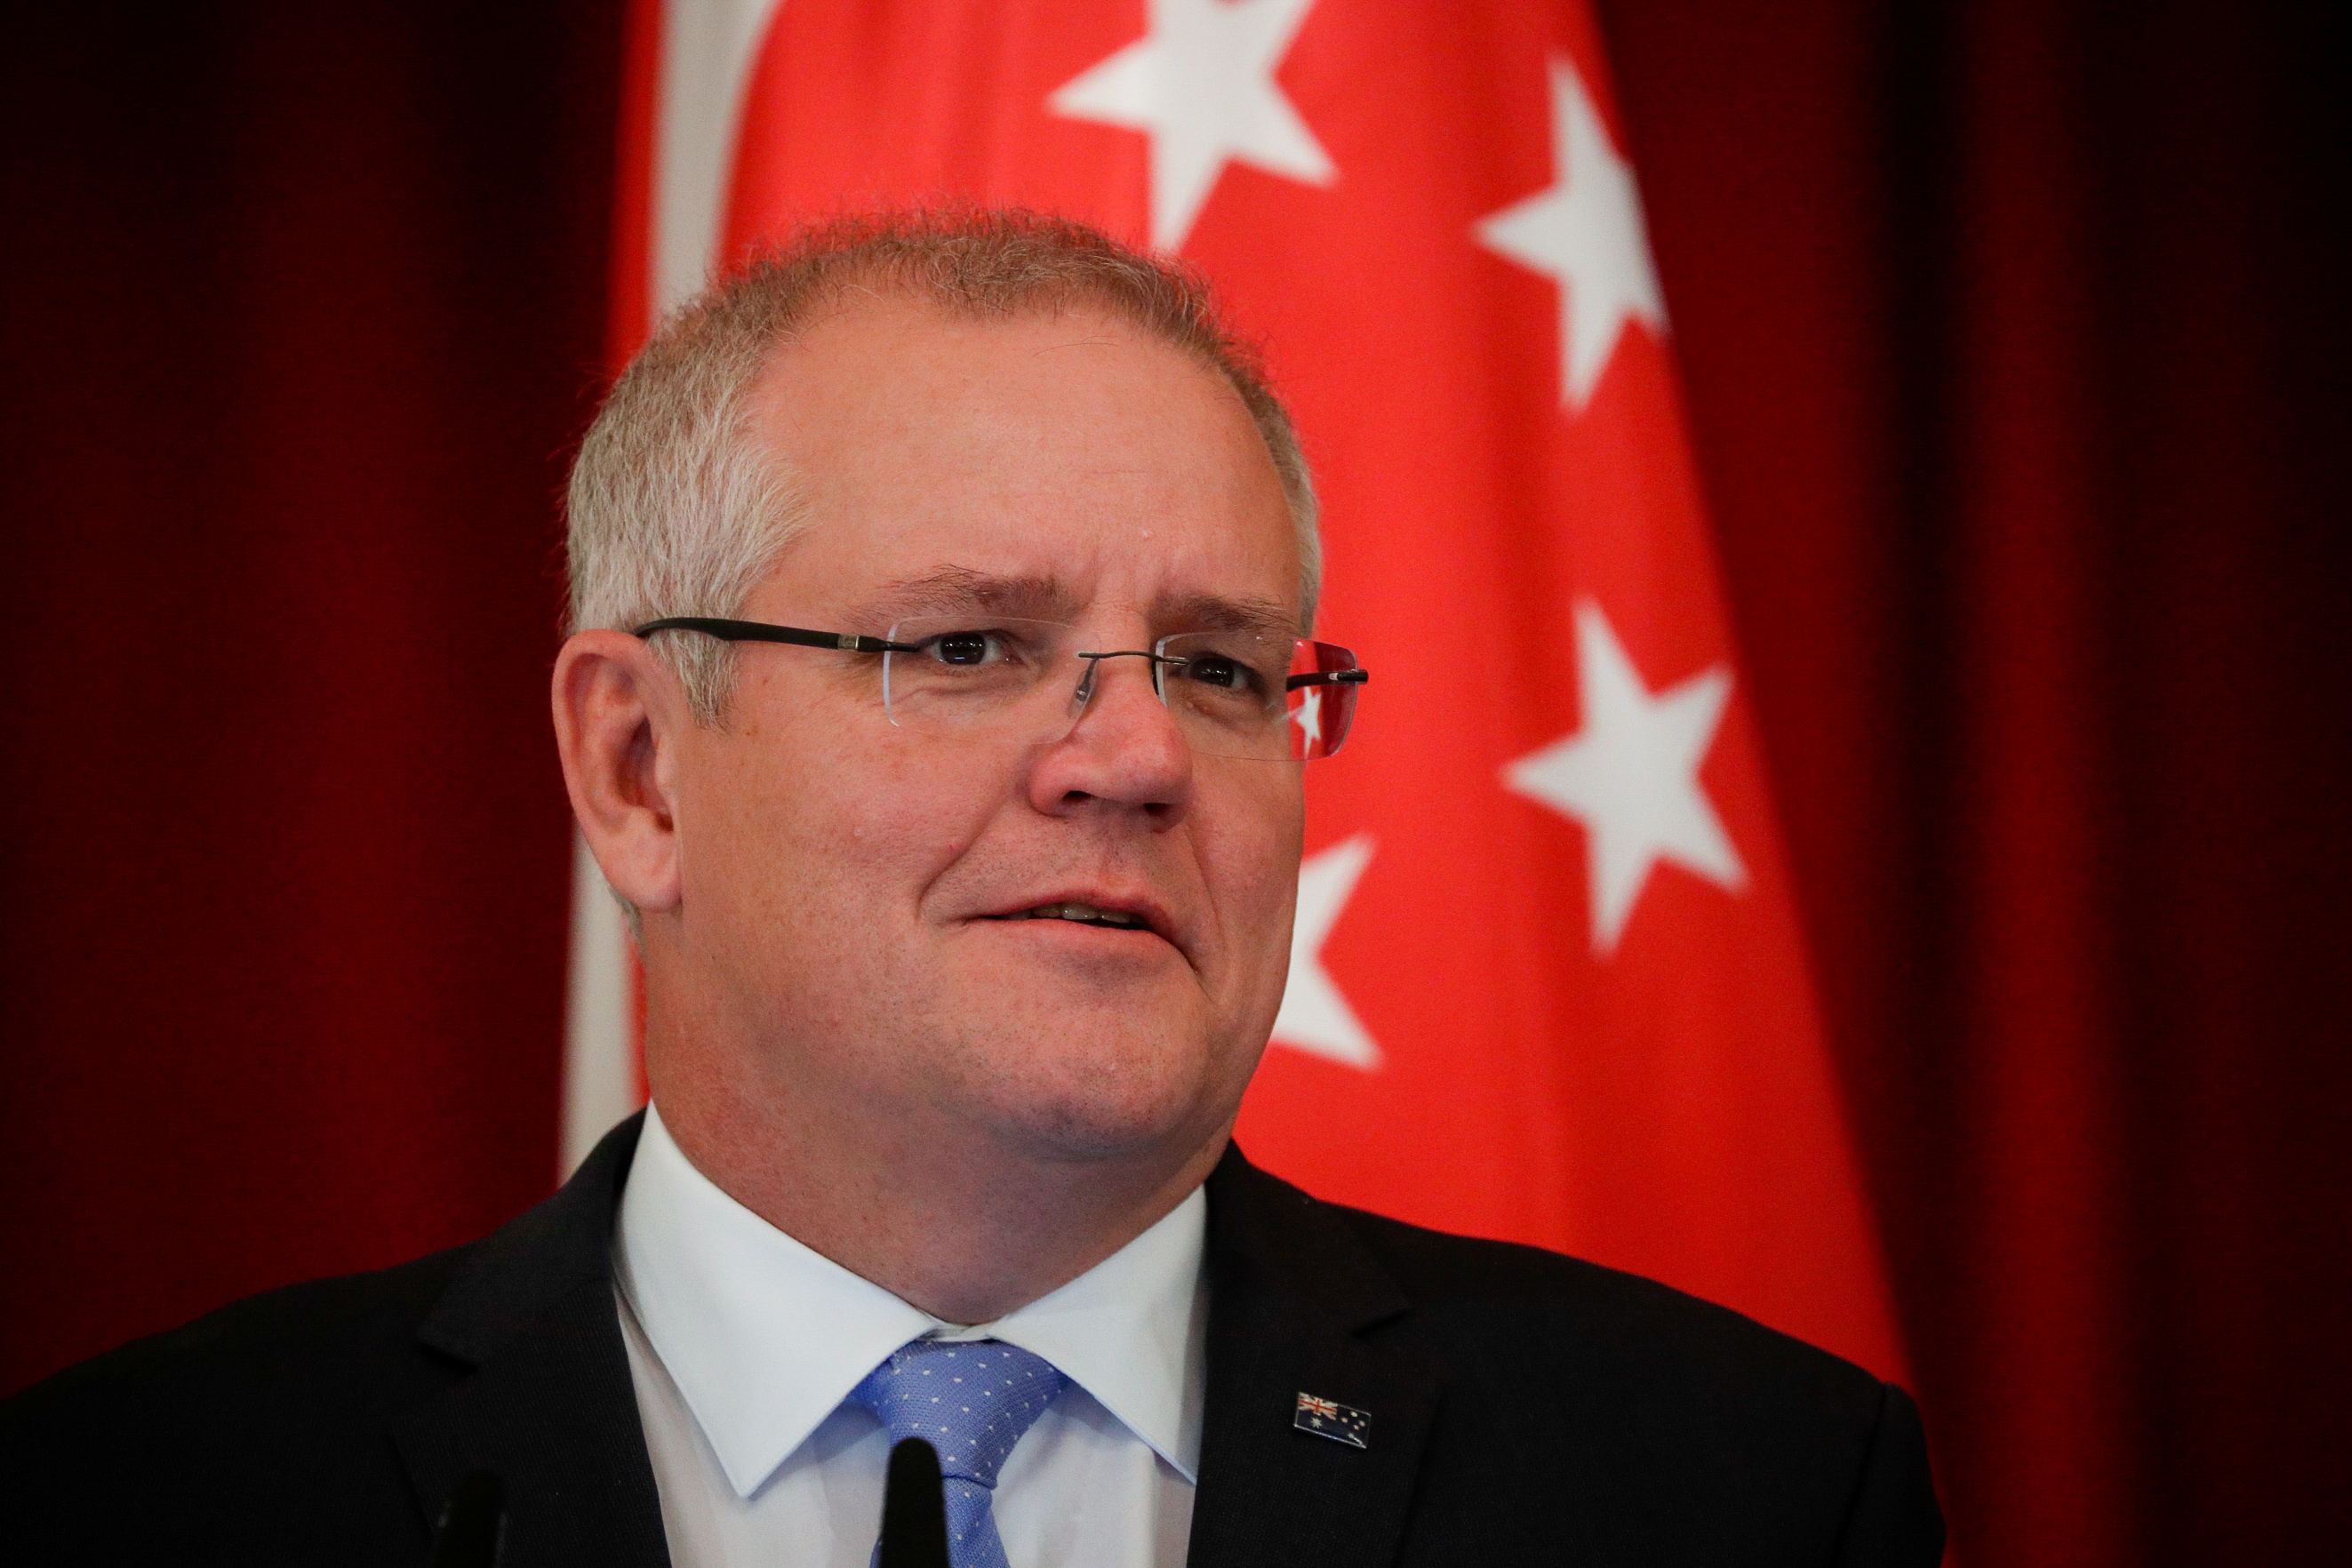 FILE PHOTO: Australian Prime Minister Scott Morrison speaks during a joint press conference at the Istana Presidential Palace in Singapore, 07 June 2019. Wallace Woon/Pool via REUTERS